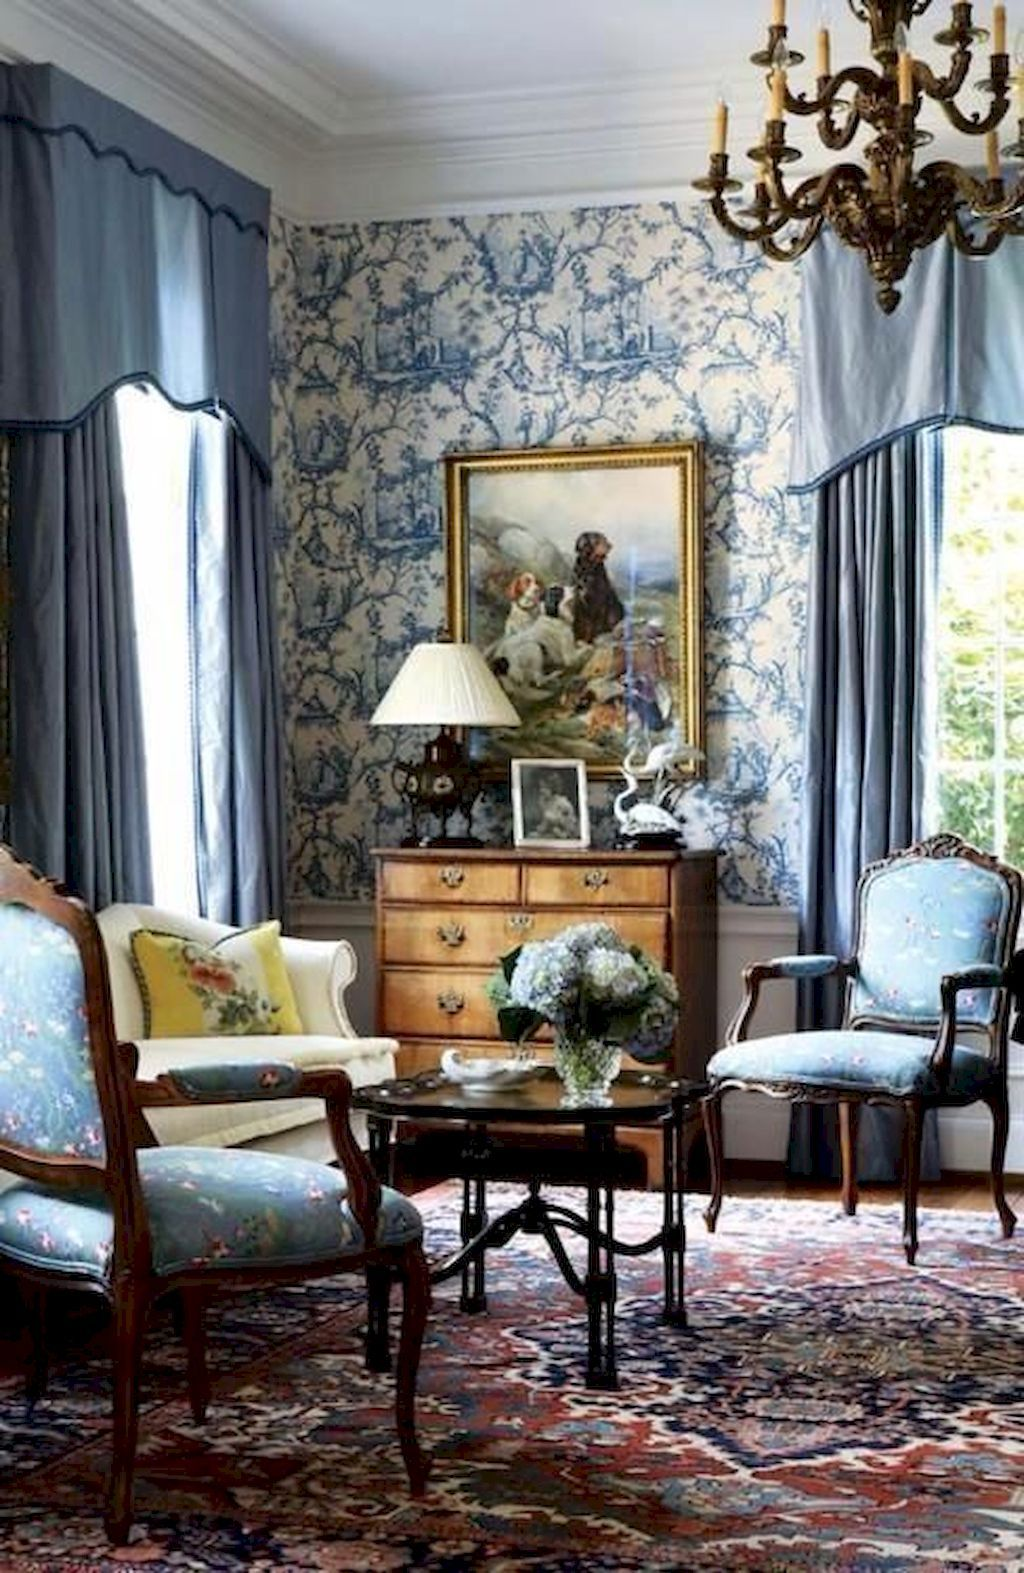 70 Cozy French Country Living Room Ideas | French country ...